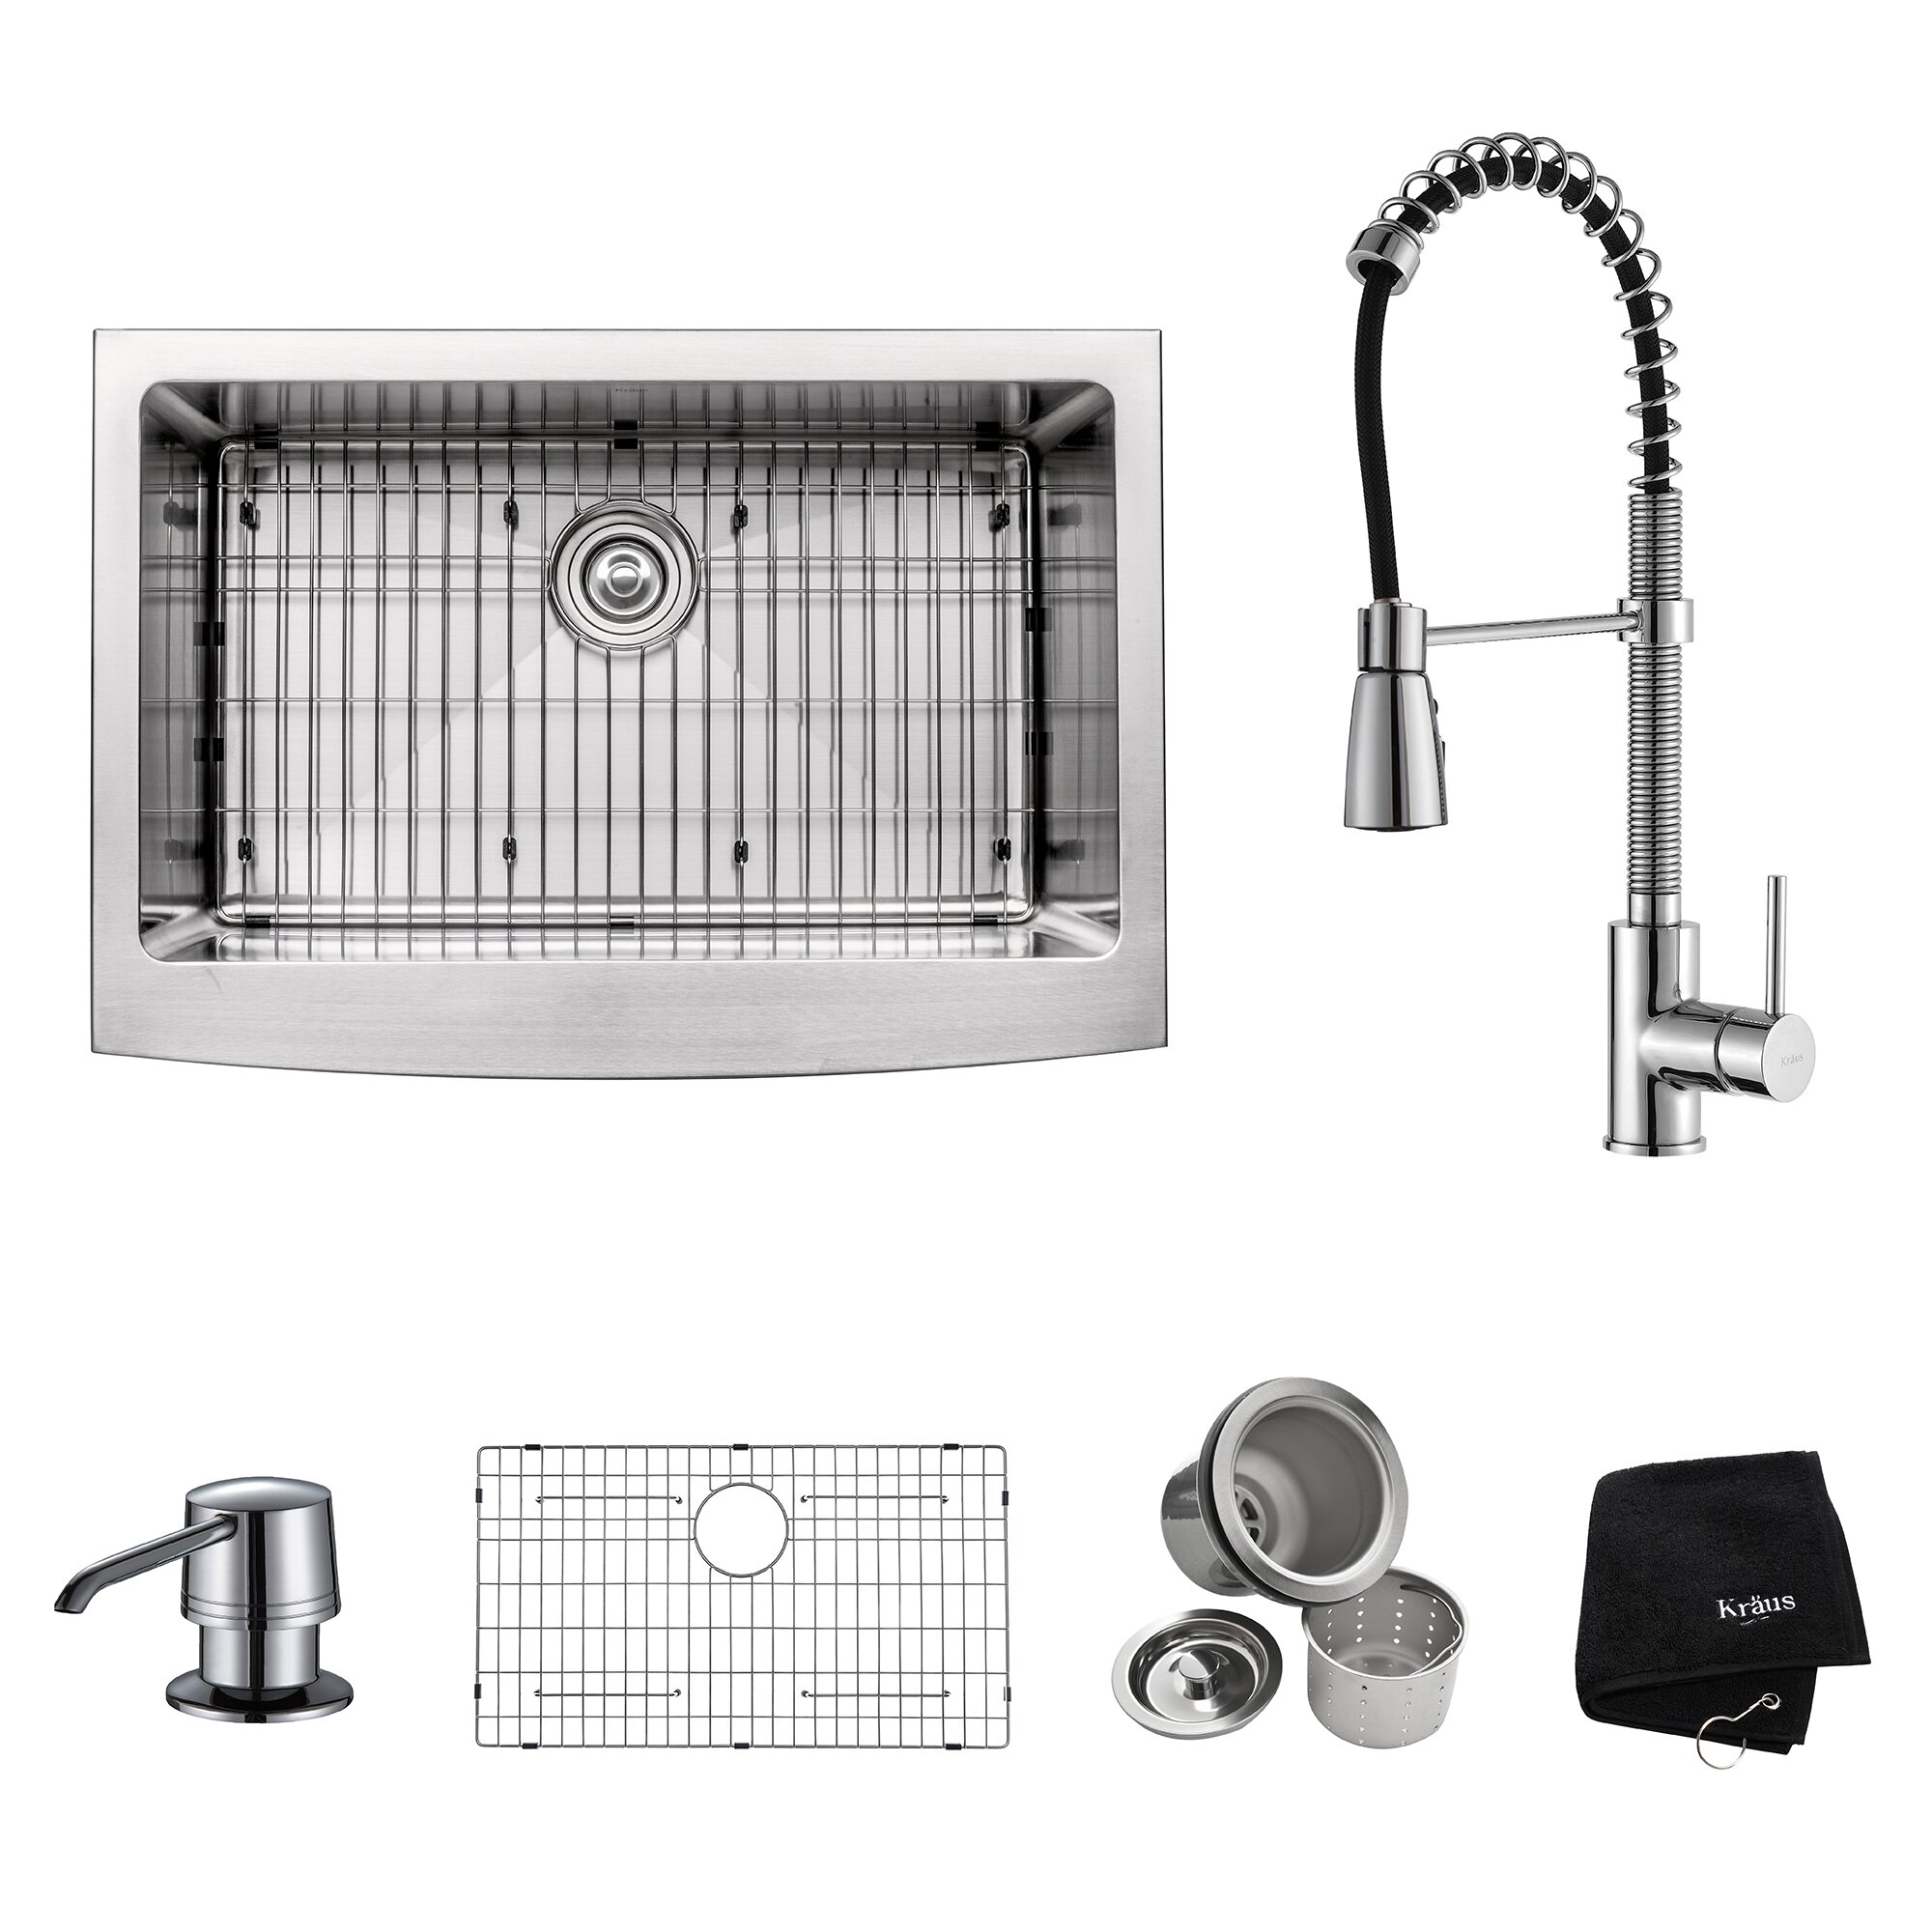 kraus kraus 30 farmhouse stainless steel x 20 kitchen sink with faucet and soap. Black Bedroom Furniture Sets. Home Design Ideas